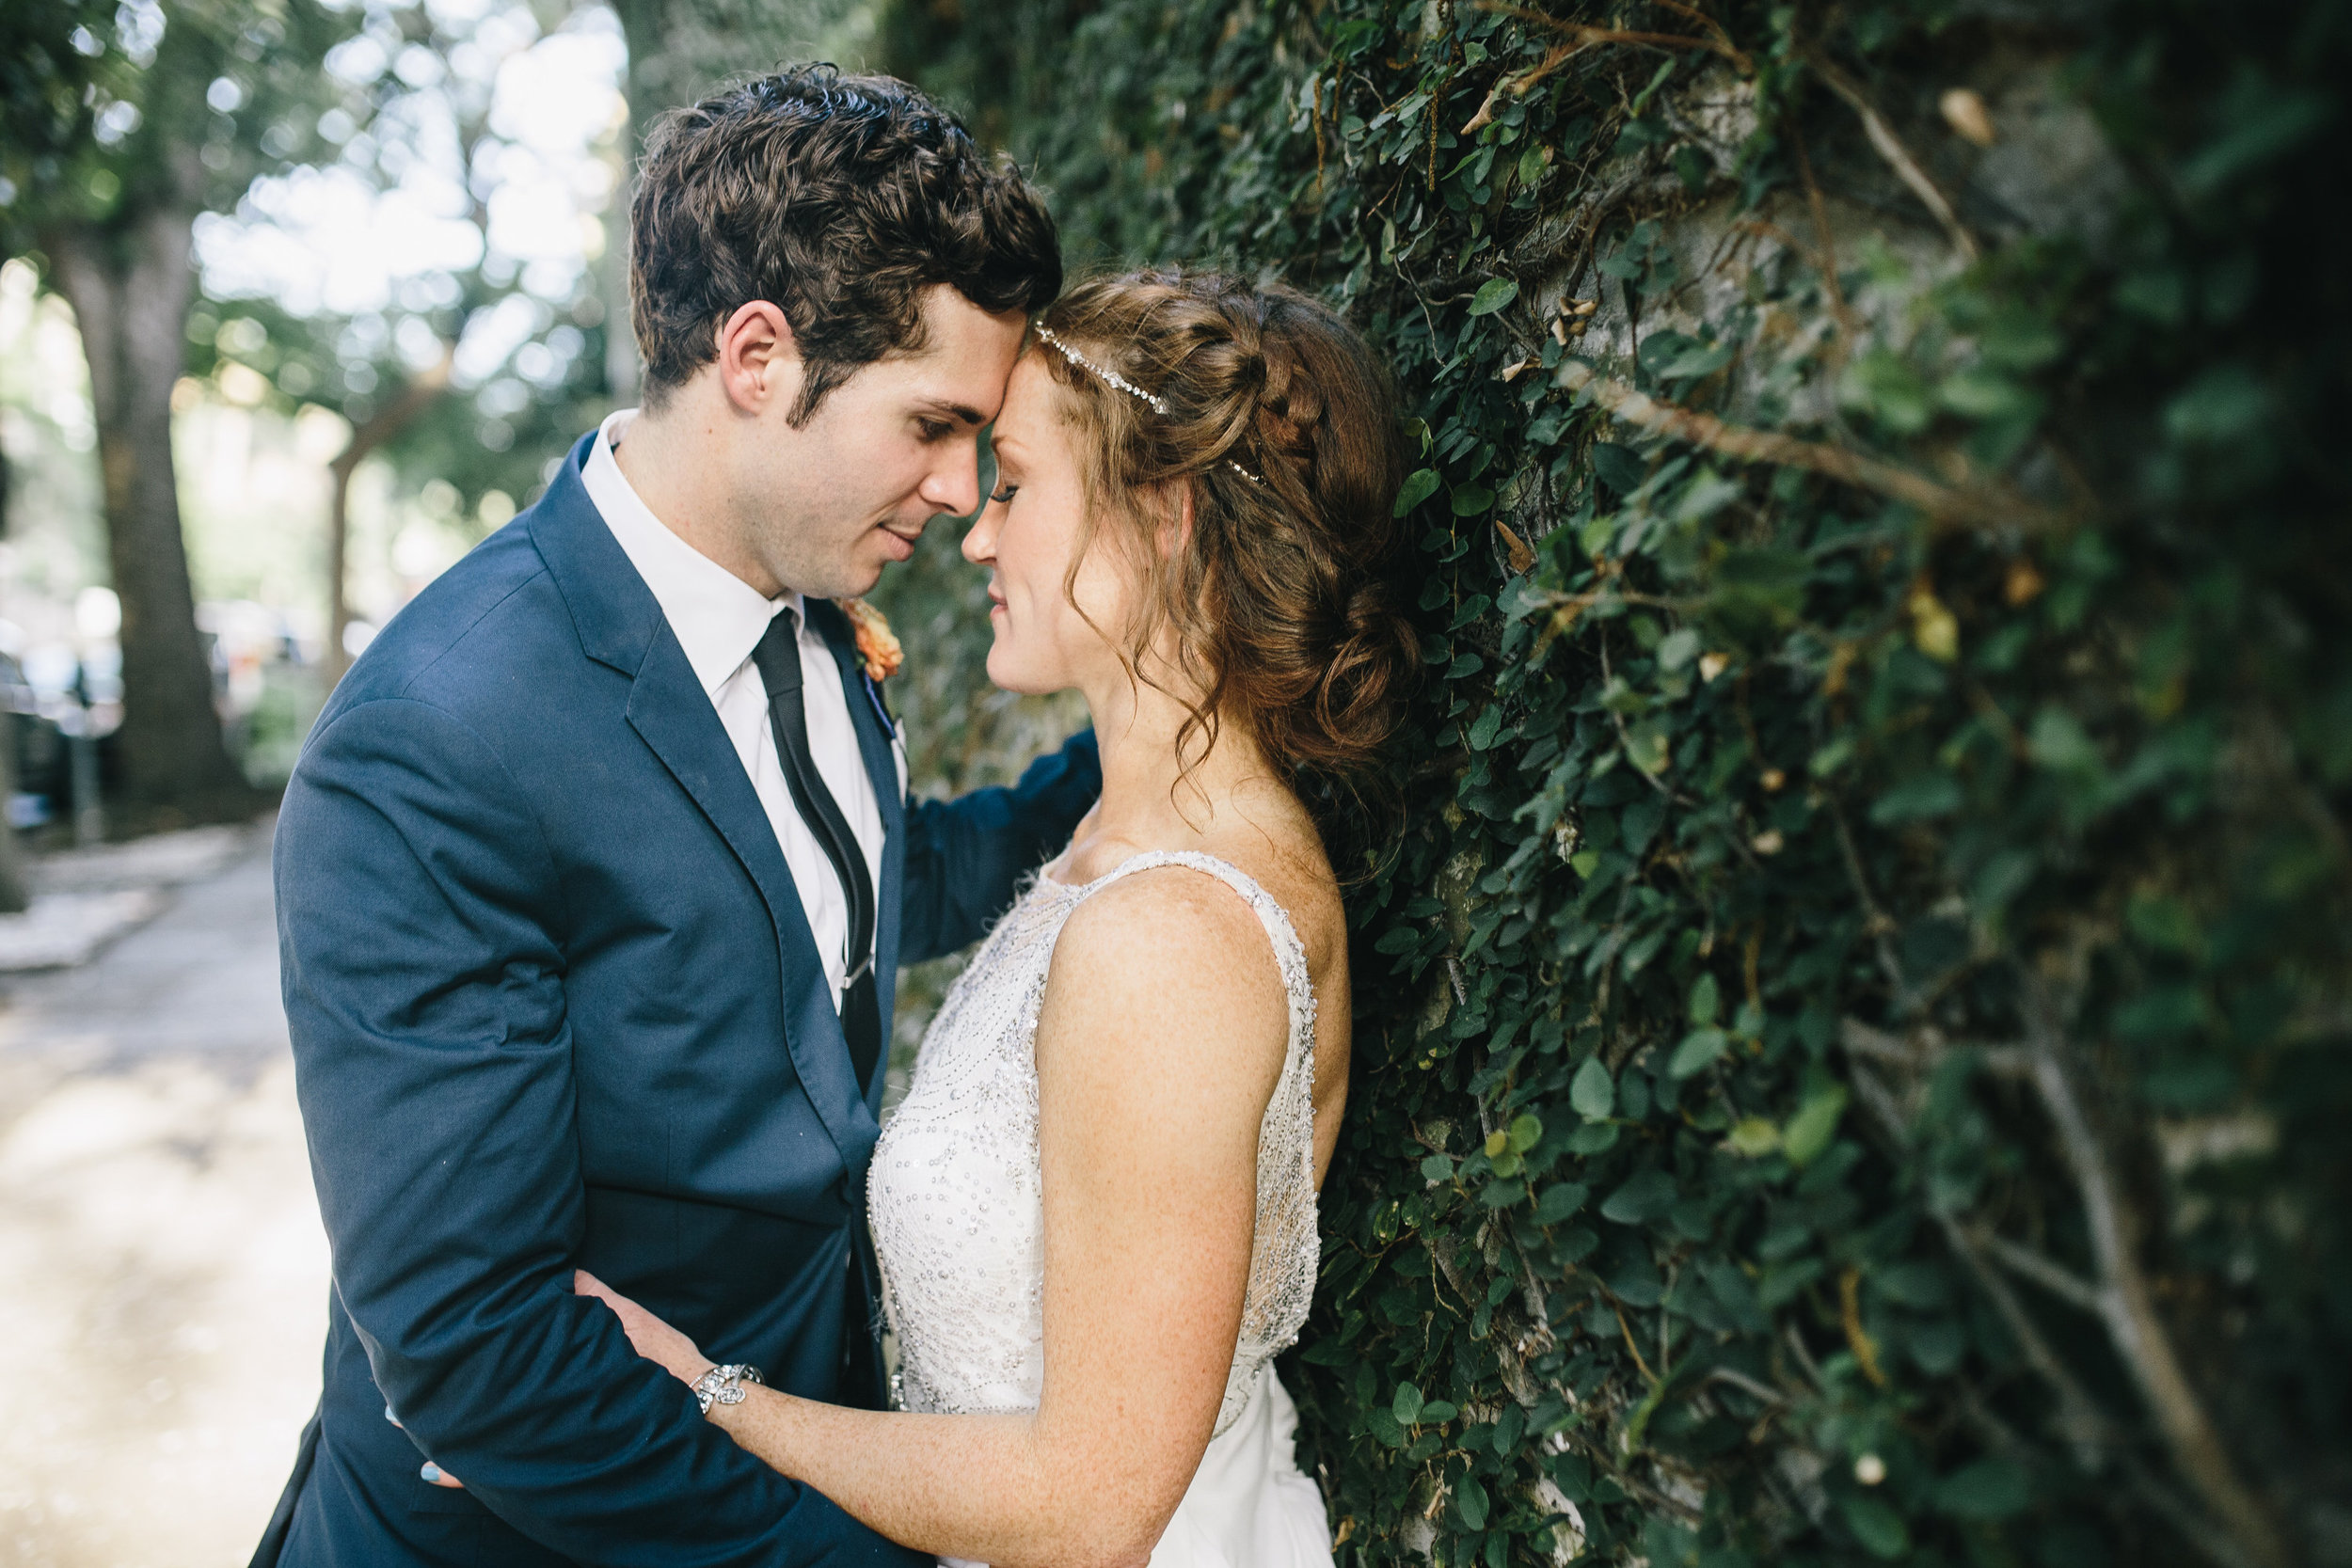 mackensey-alexander-photography-ivory-and-beau-bridal-boutique-from-this-day-forward-wedding-planning-sarah-seven-gwen-savannah-bridal-boutique-savannah-wedding-dresses-savannah-bridal-boutique-savannah-wedding-planner-savannah-weddings-49.jpg